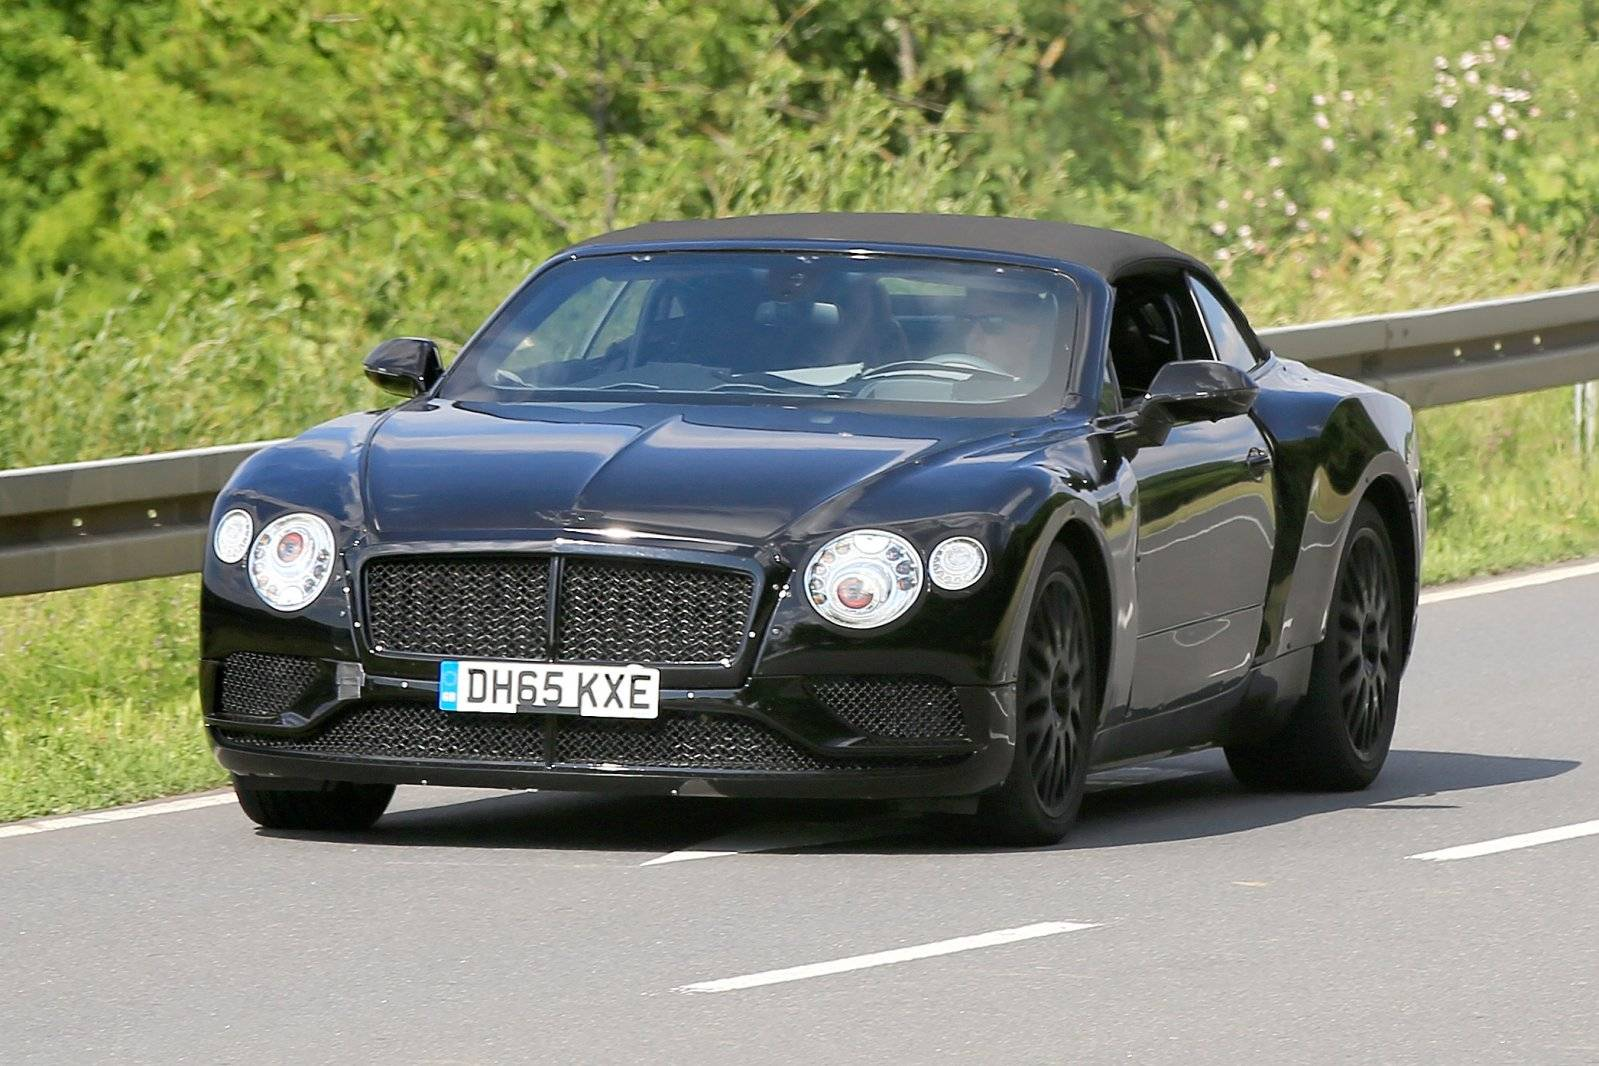 nieuwe bentley continental gt gtc ogen veelbelovend. Black Bedroom Furniture Sets. Home Design Ideas